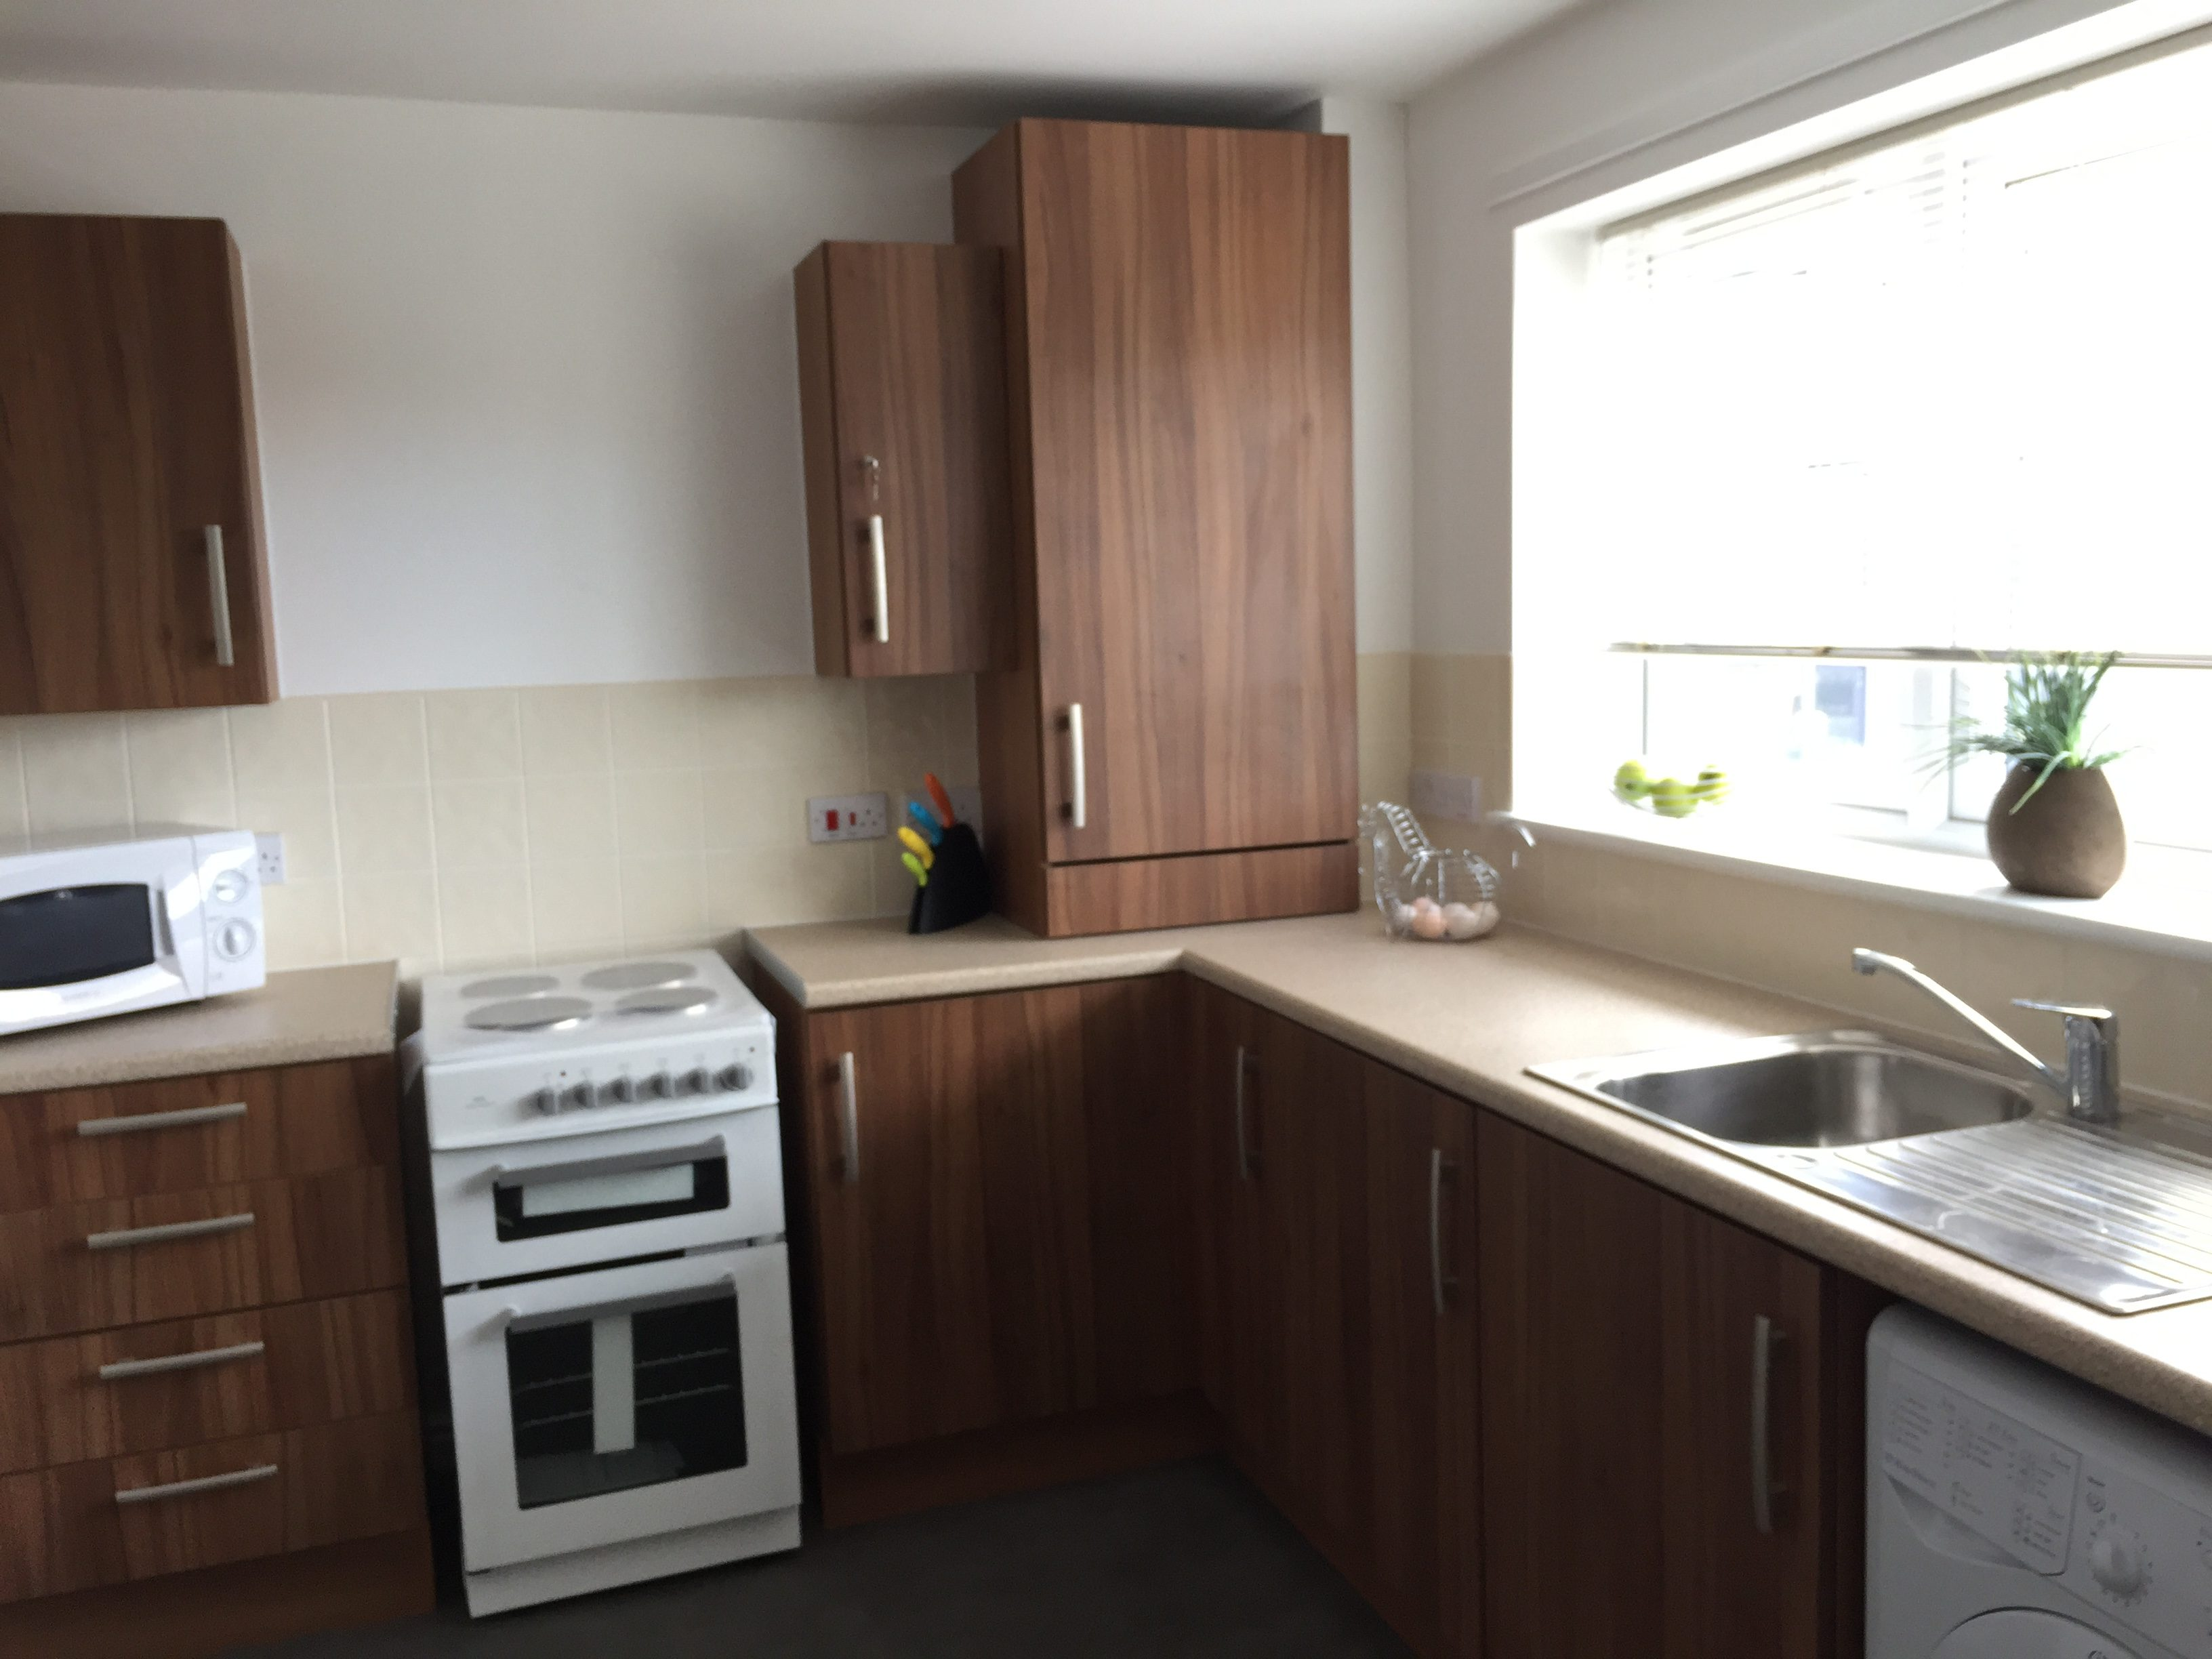 Accommodation Middlesbrough Kitchen 1